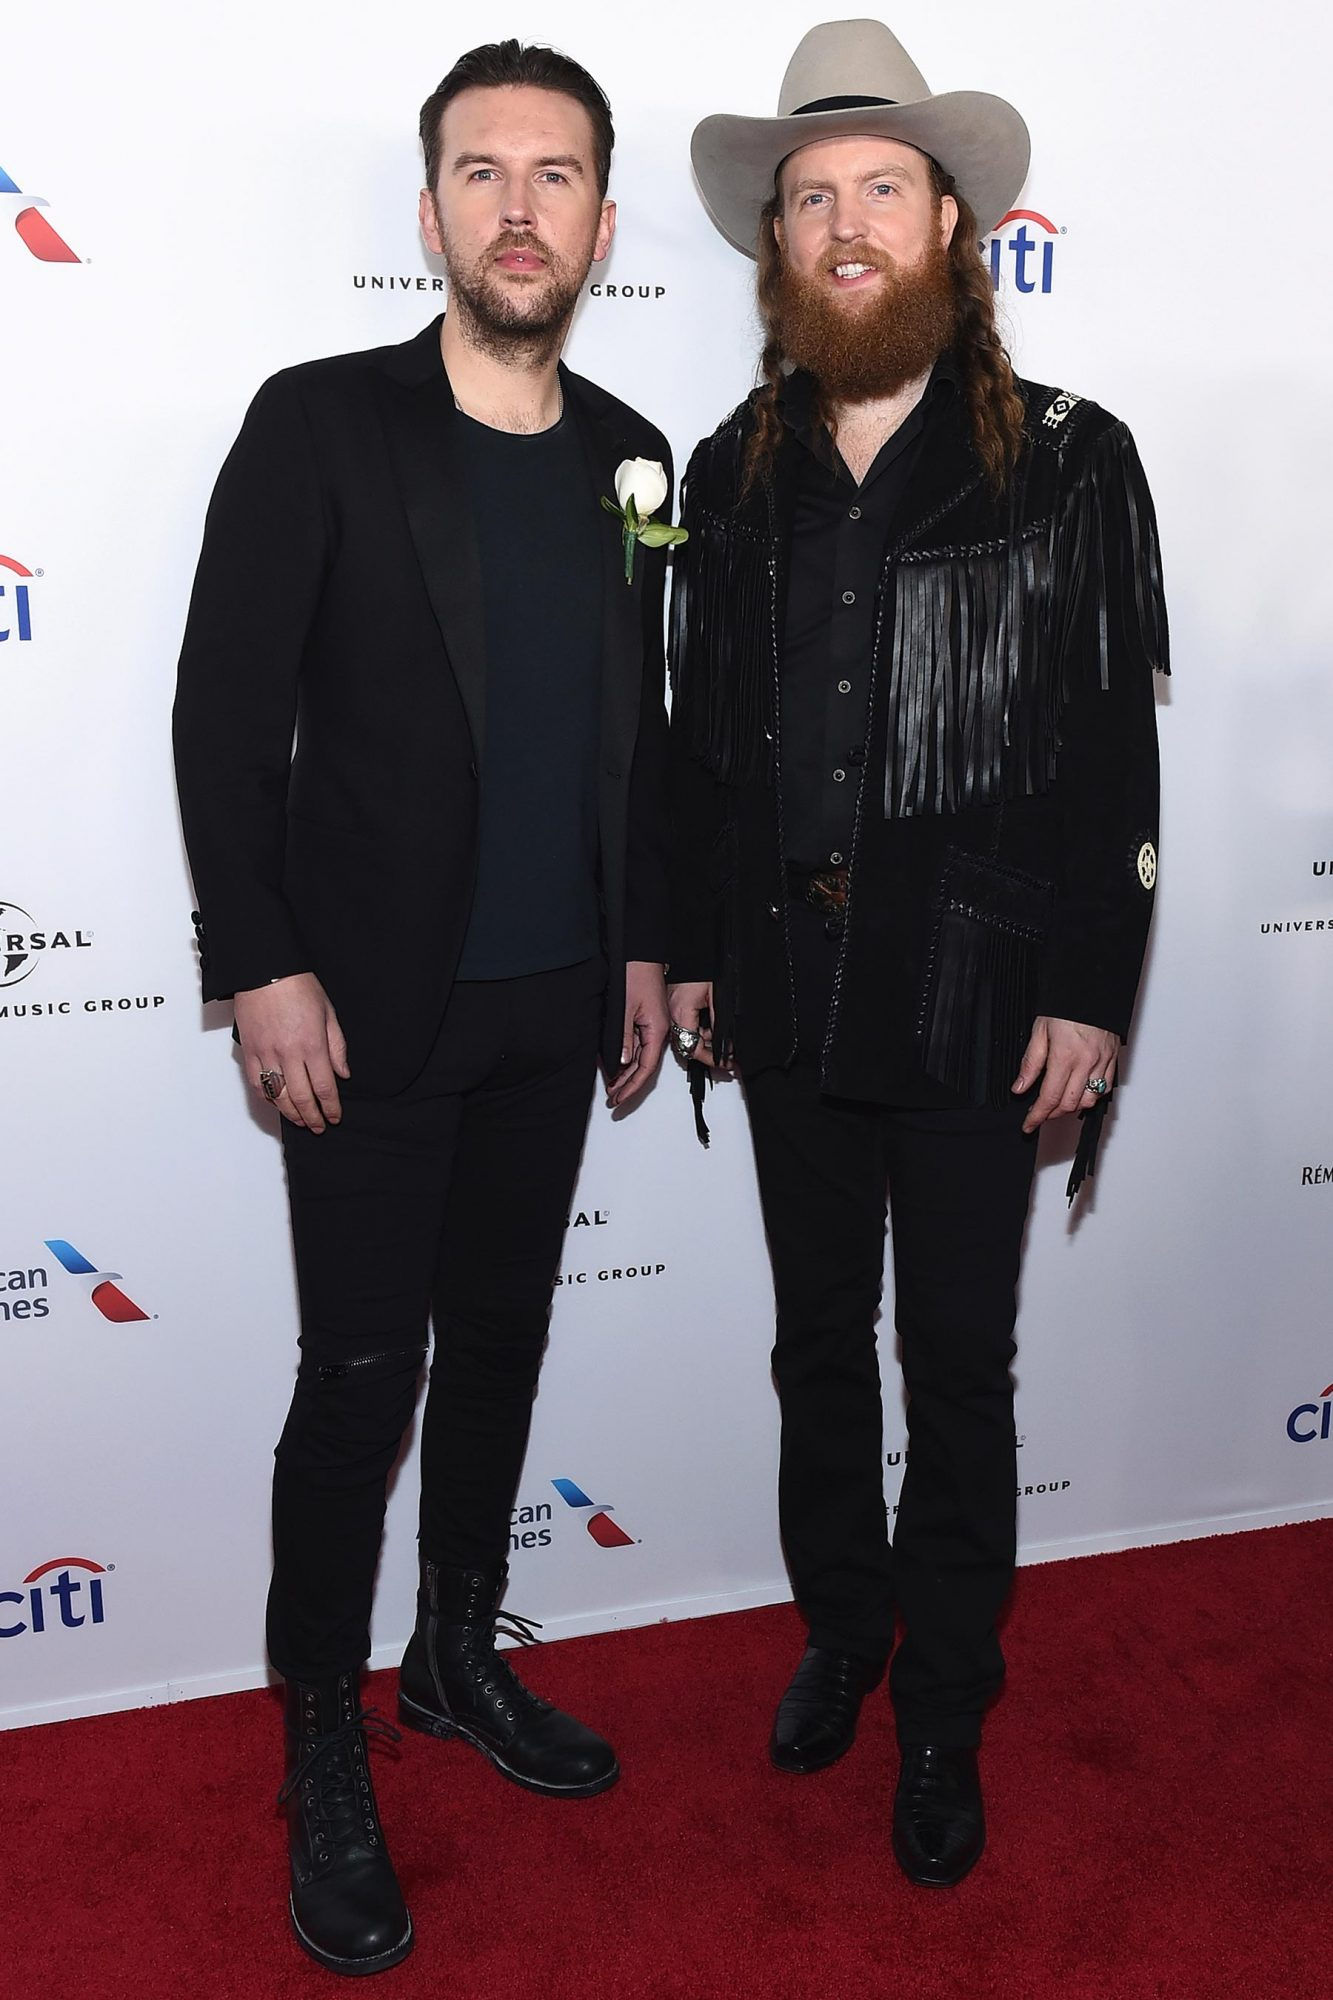 Universal Music Group's 2018 After Party For The Grammy Awards Presented By American Airlines And Citi On January 28, 2018 In New York City - Arrivals